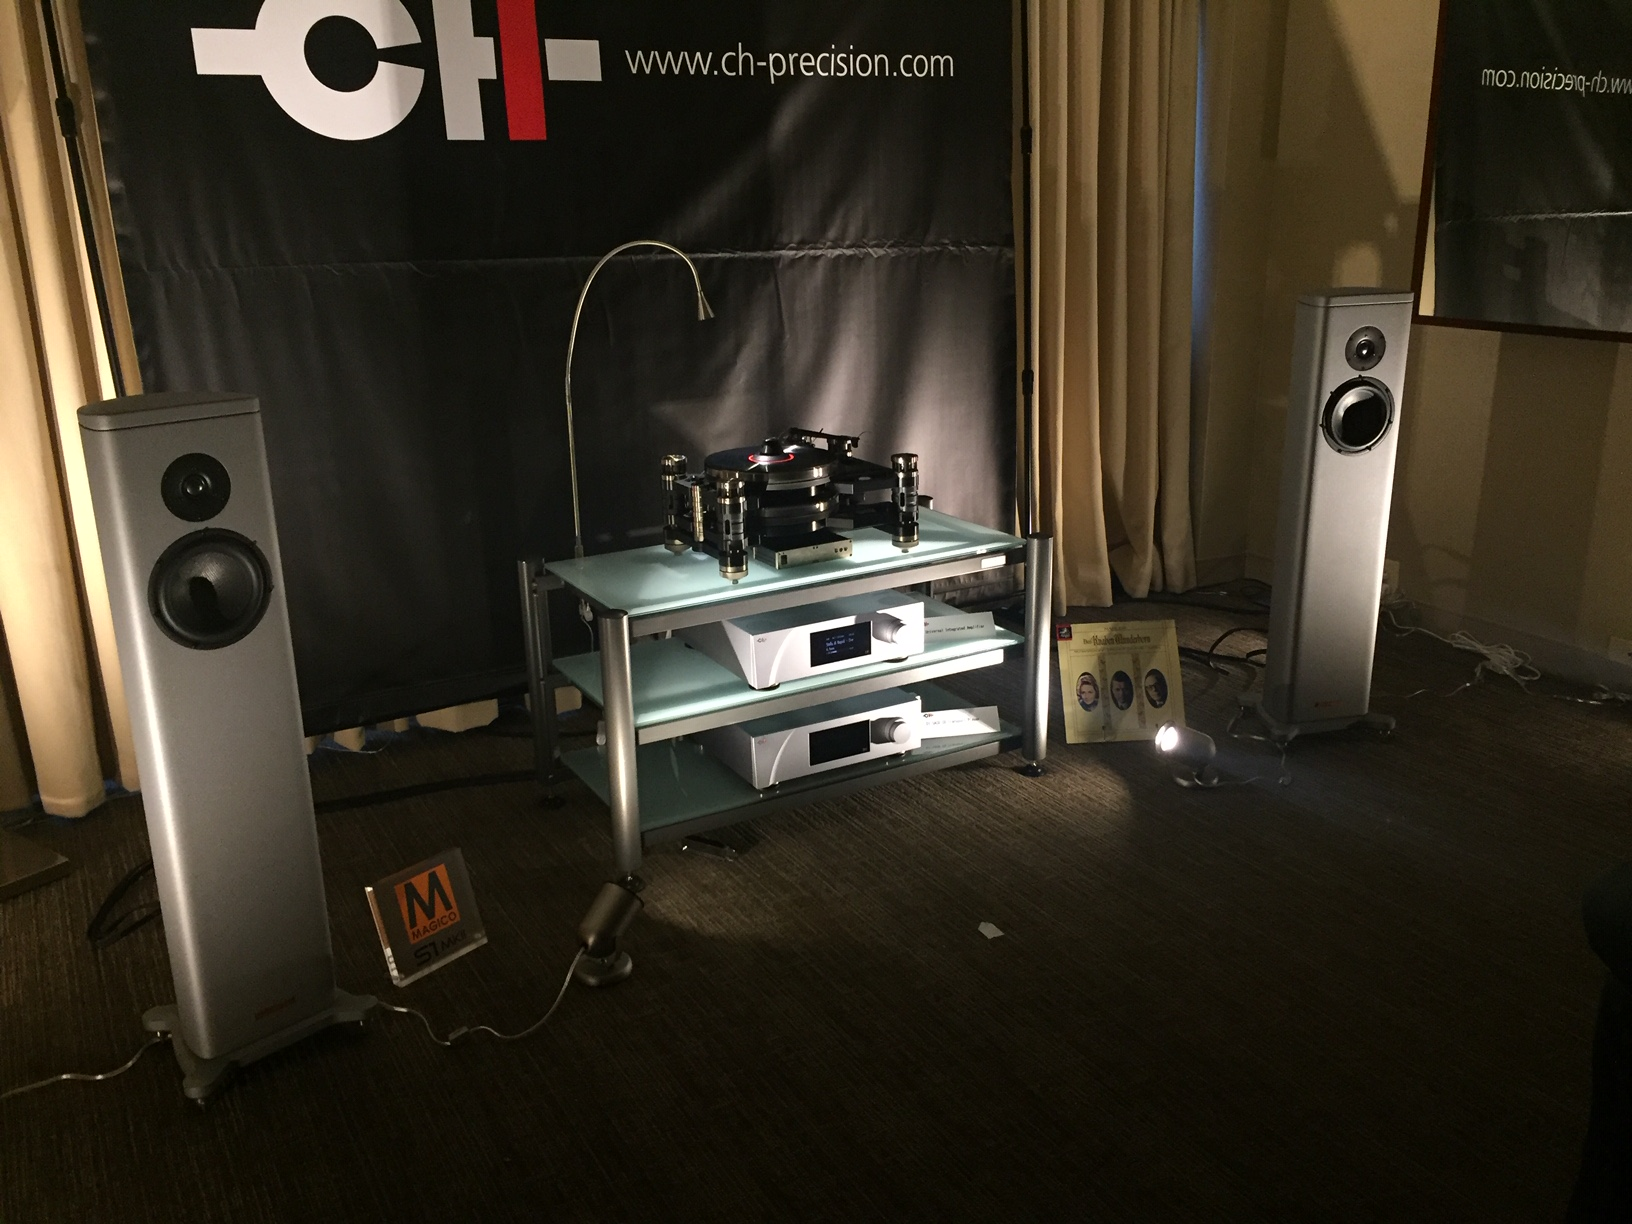 CH Precision at Axpona 2017